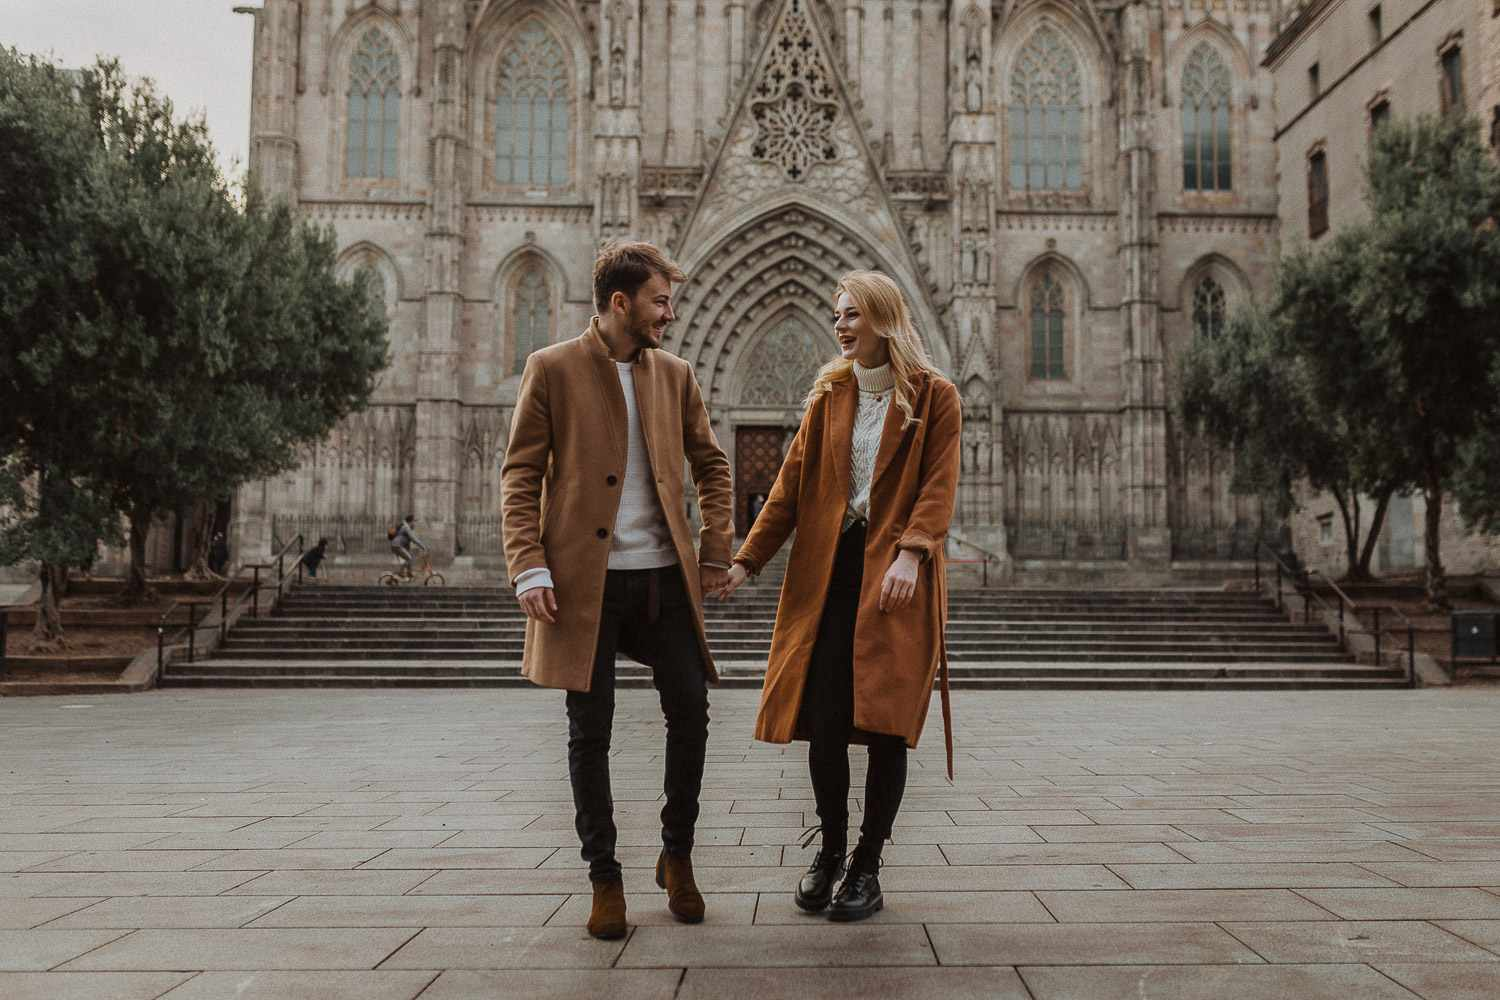 Couple photo shoot in Barcelona's old town